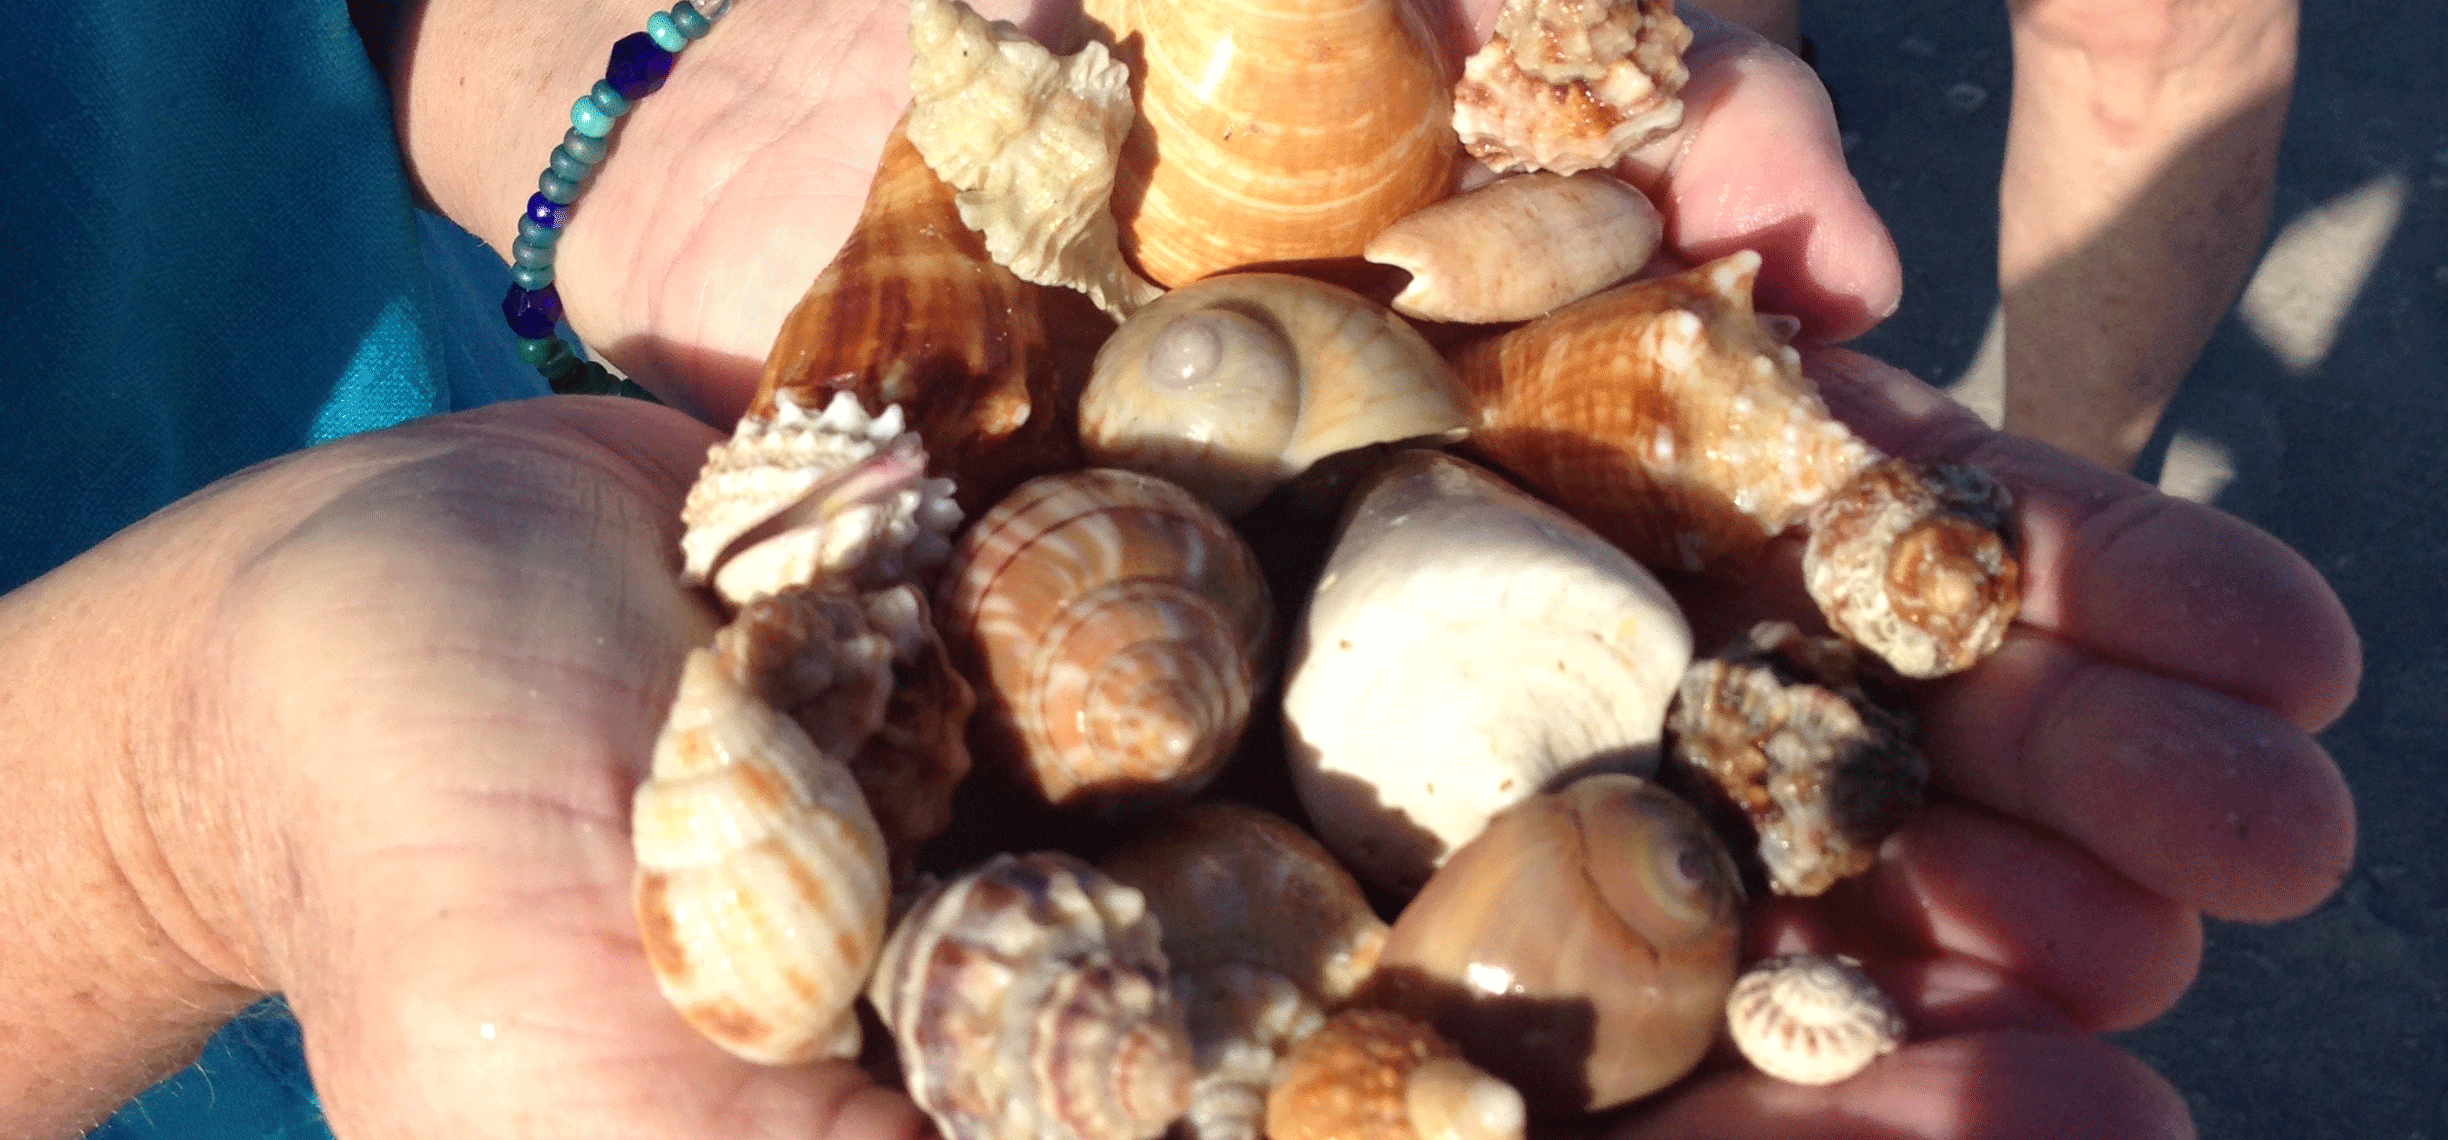 island-inn-sanibel-shelling-january-2015-151